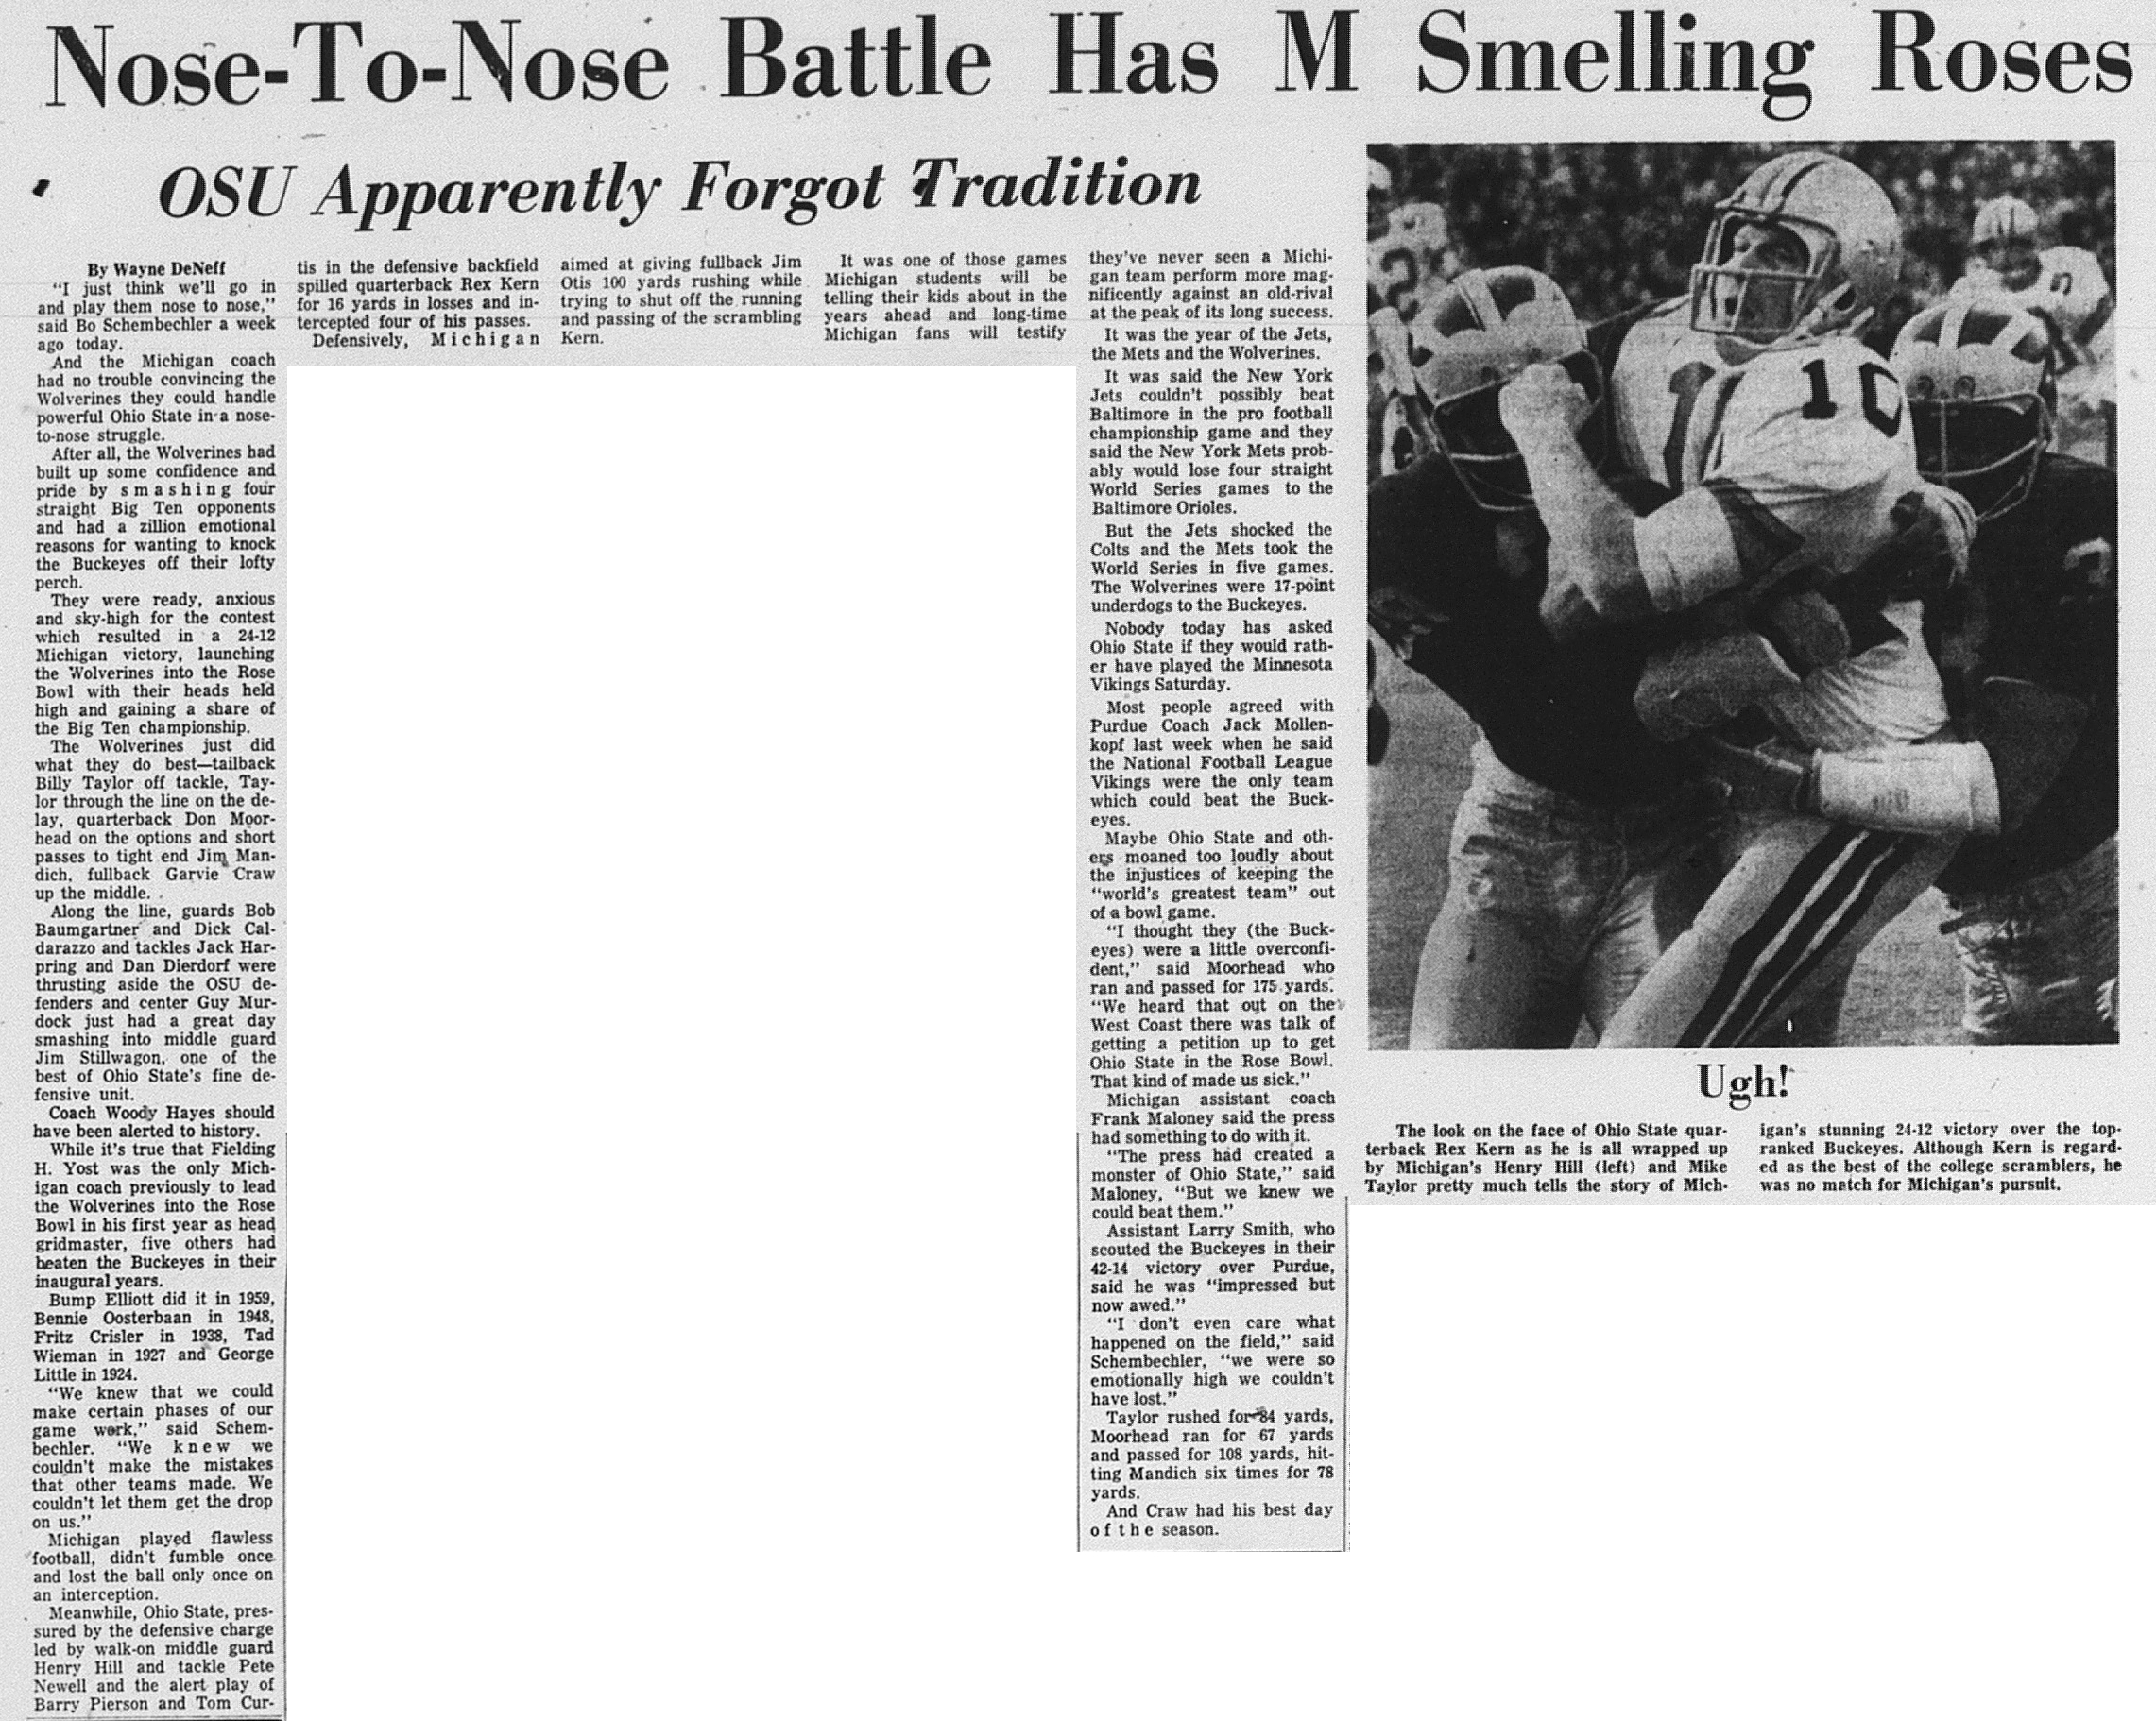 Nose-To-Nose Battle Has M Smelling Roses image